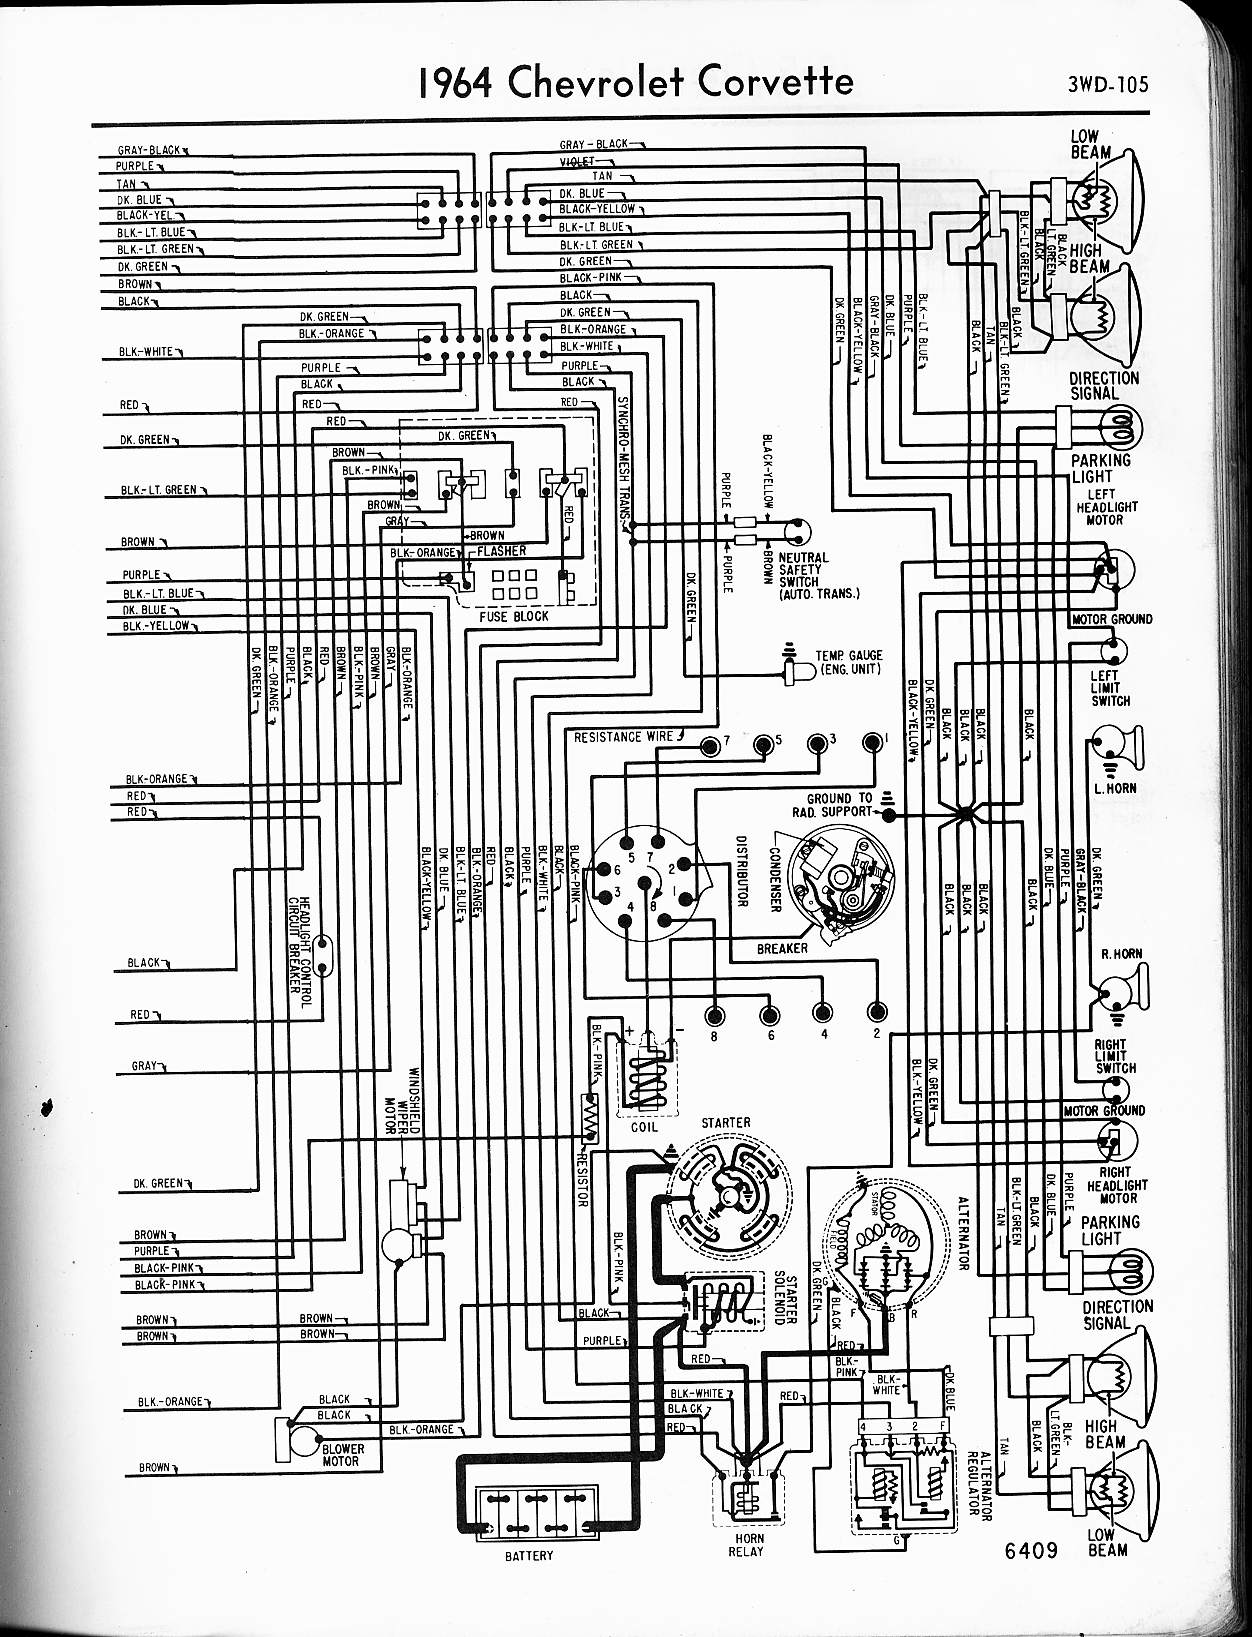 1970 Corvette Wiring Schematic Detailed Diagrams Jeep Electrical Diagram 1973 Chevy Chevelle